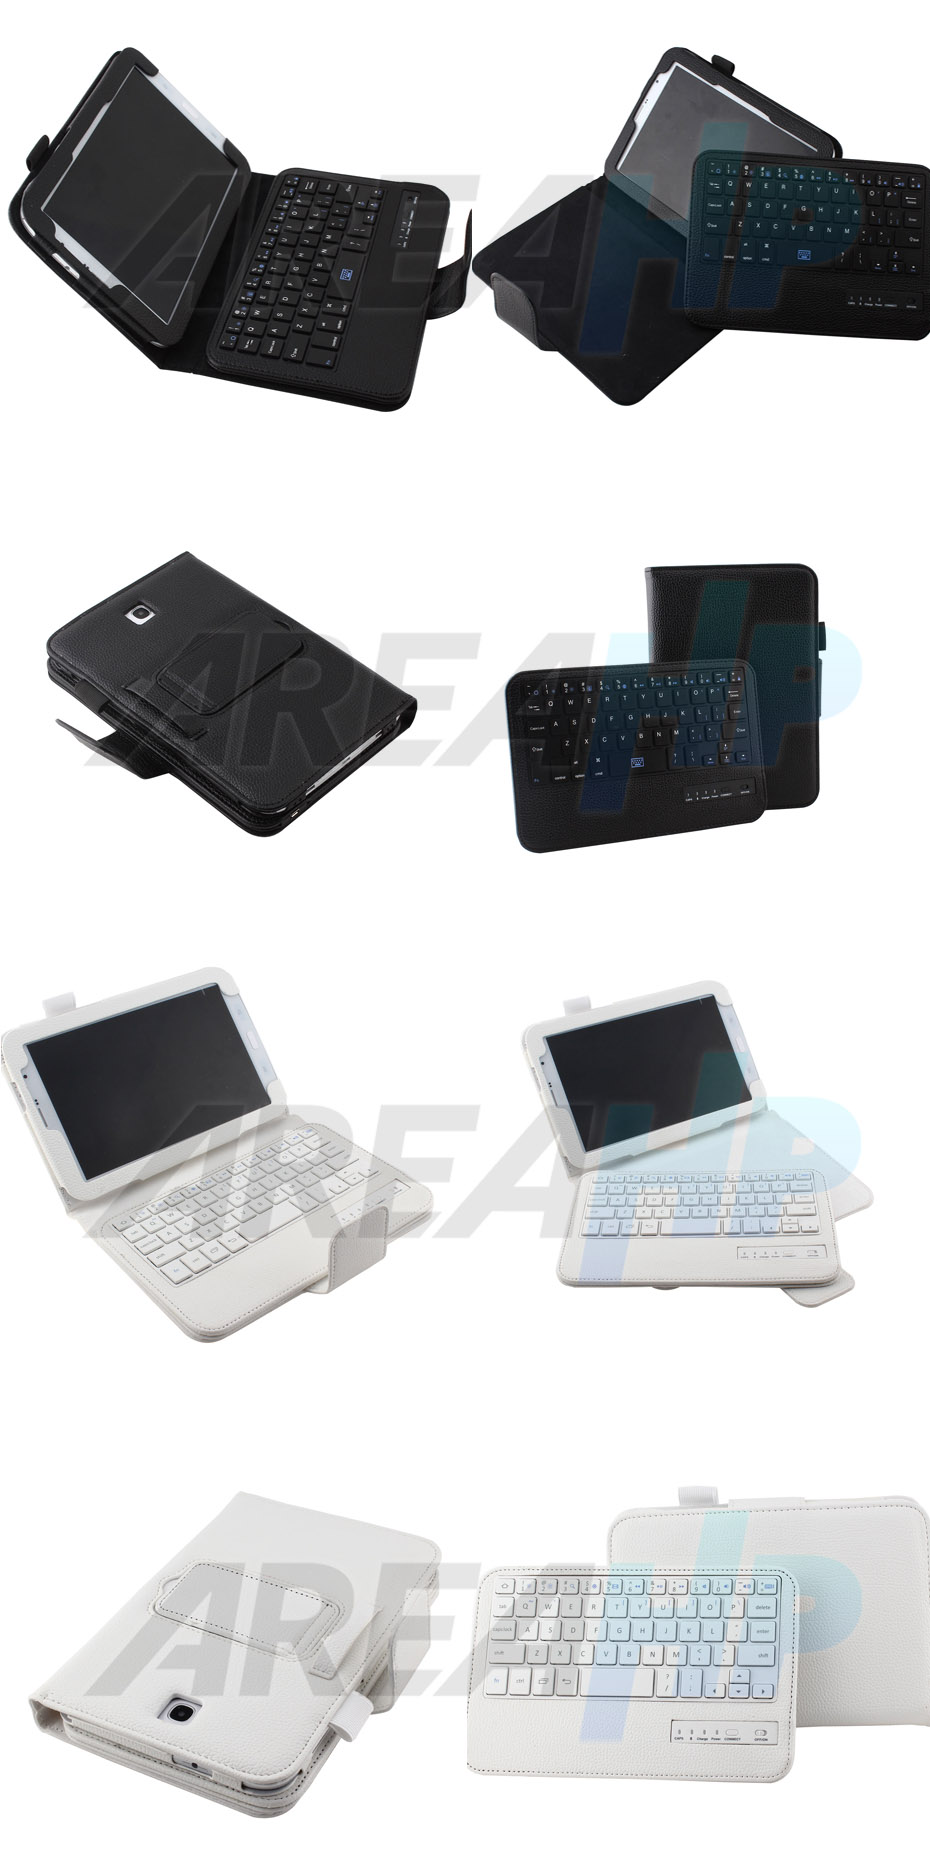 Removable Keyboard Leather Case for Samsung Galaxy Note 8.0 N5100 Overview